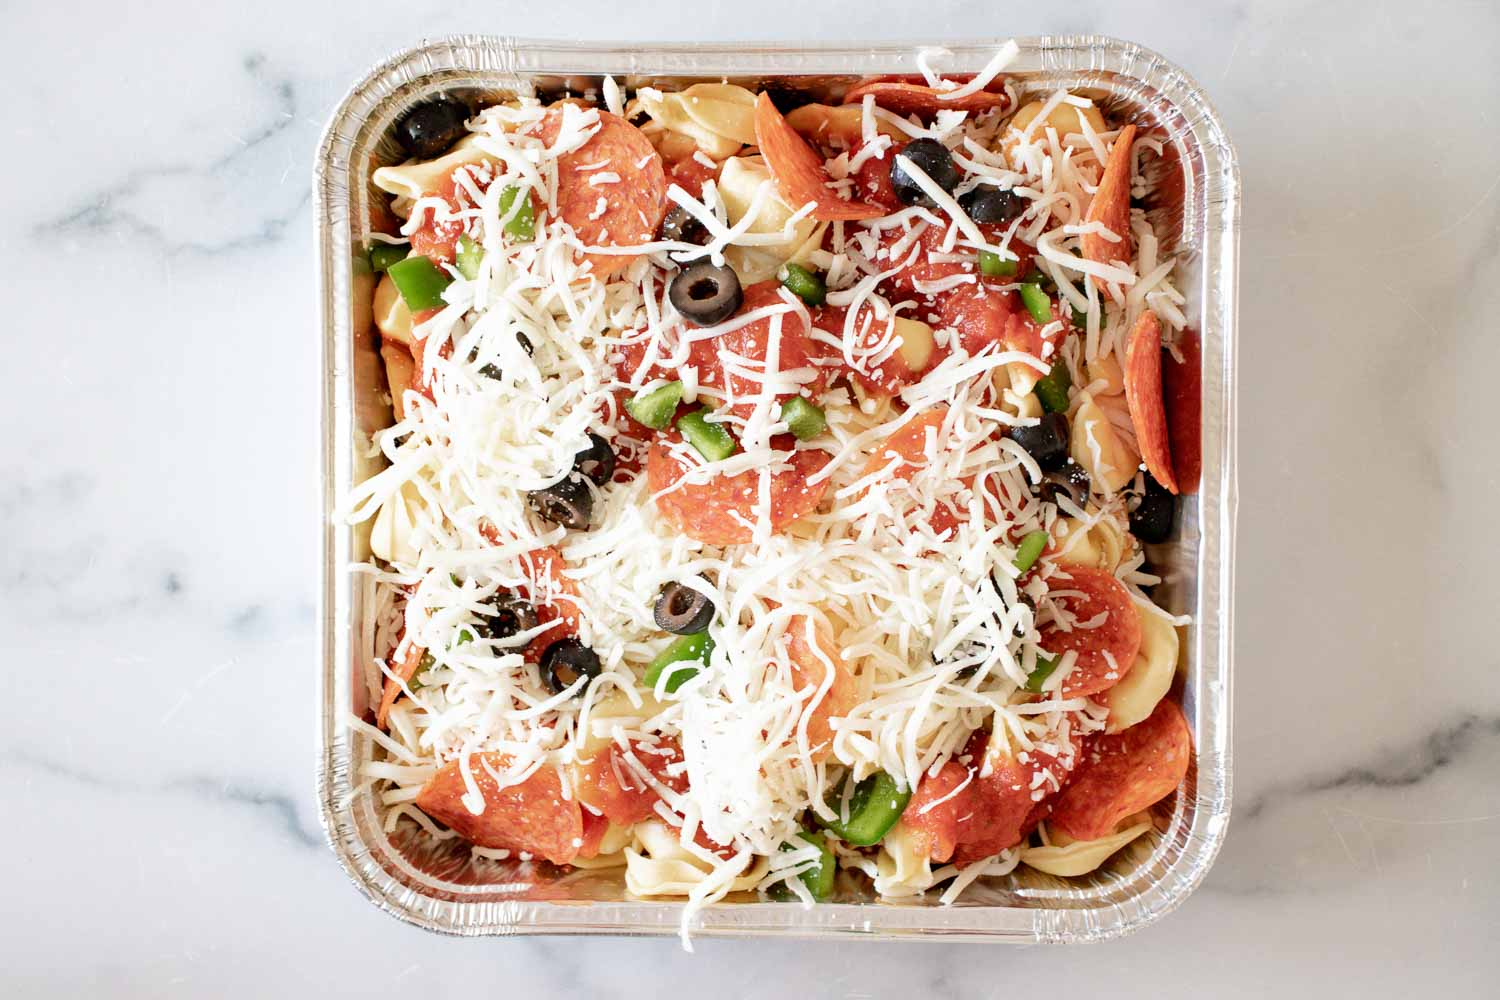 A silver square foil pan with unbaked pasta bake in it.